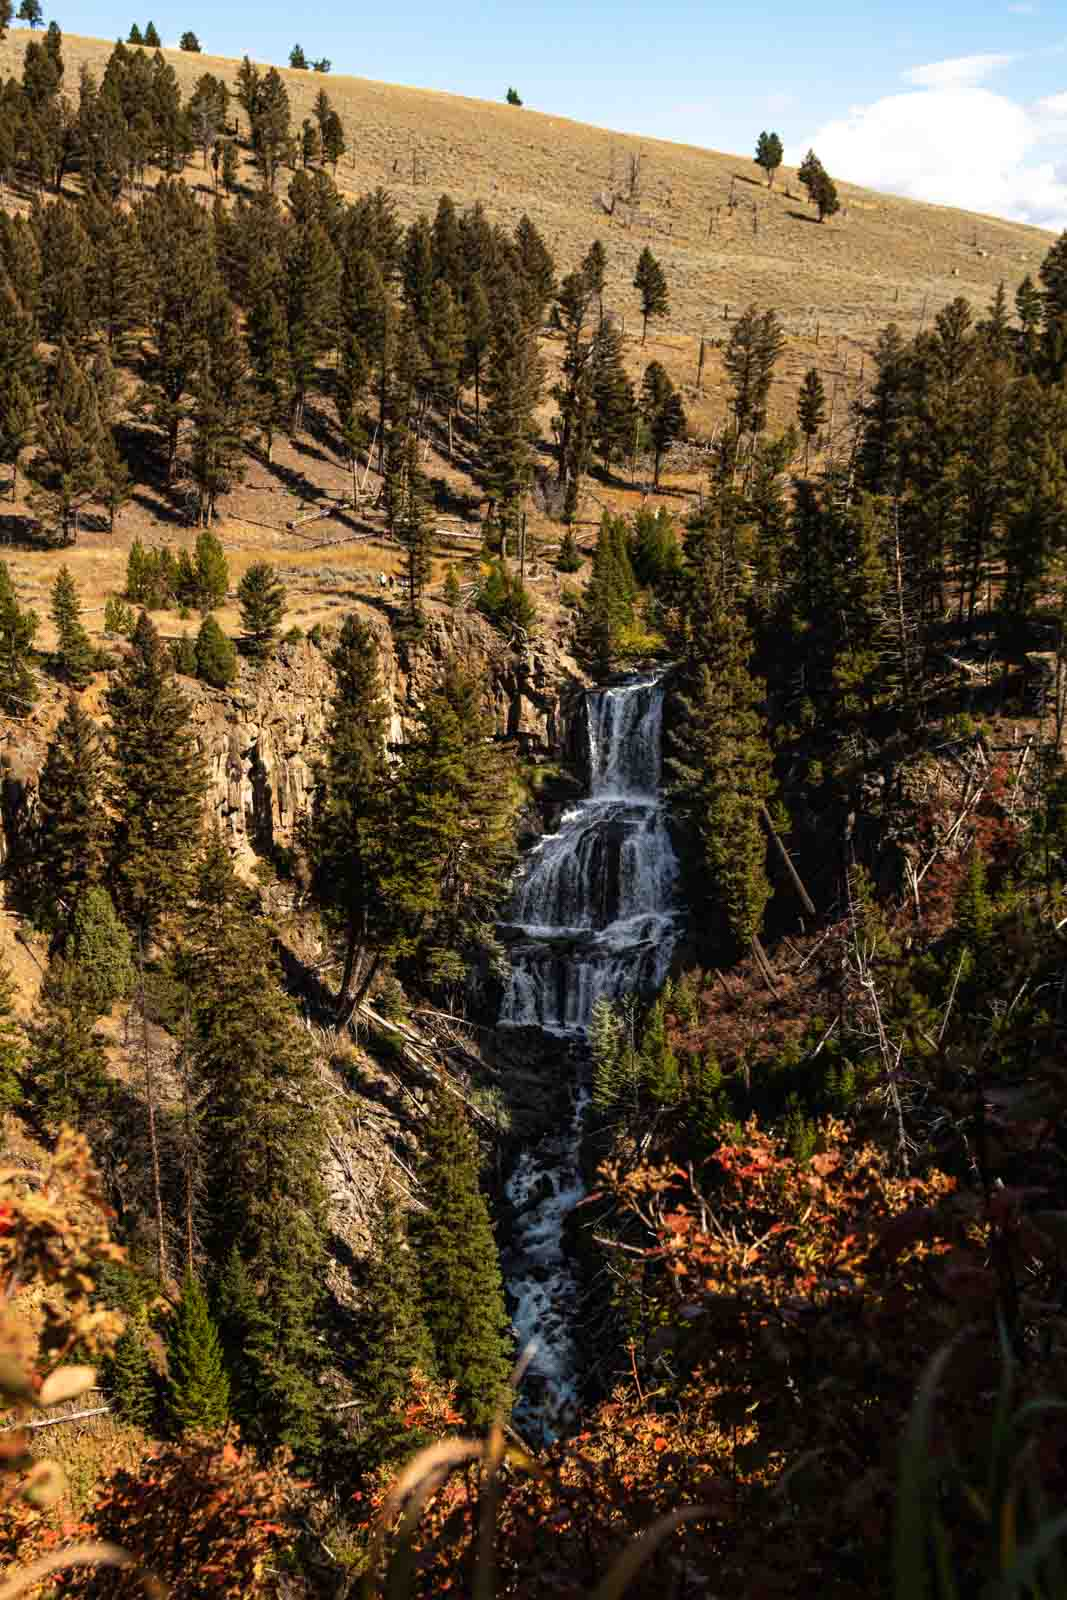 A view of Undine Falls that shouldn't be skipped on your Yellowstone itinerary